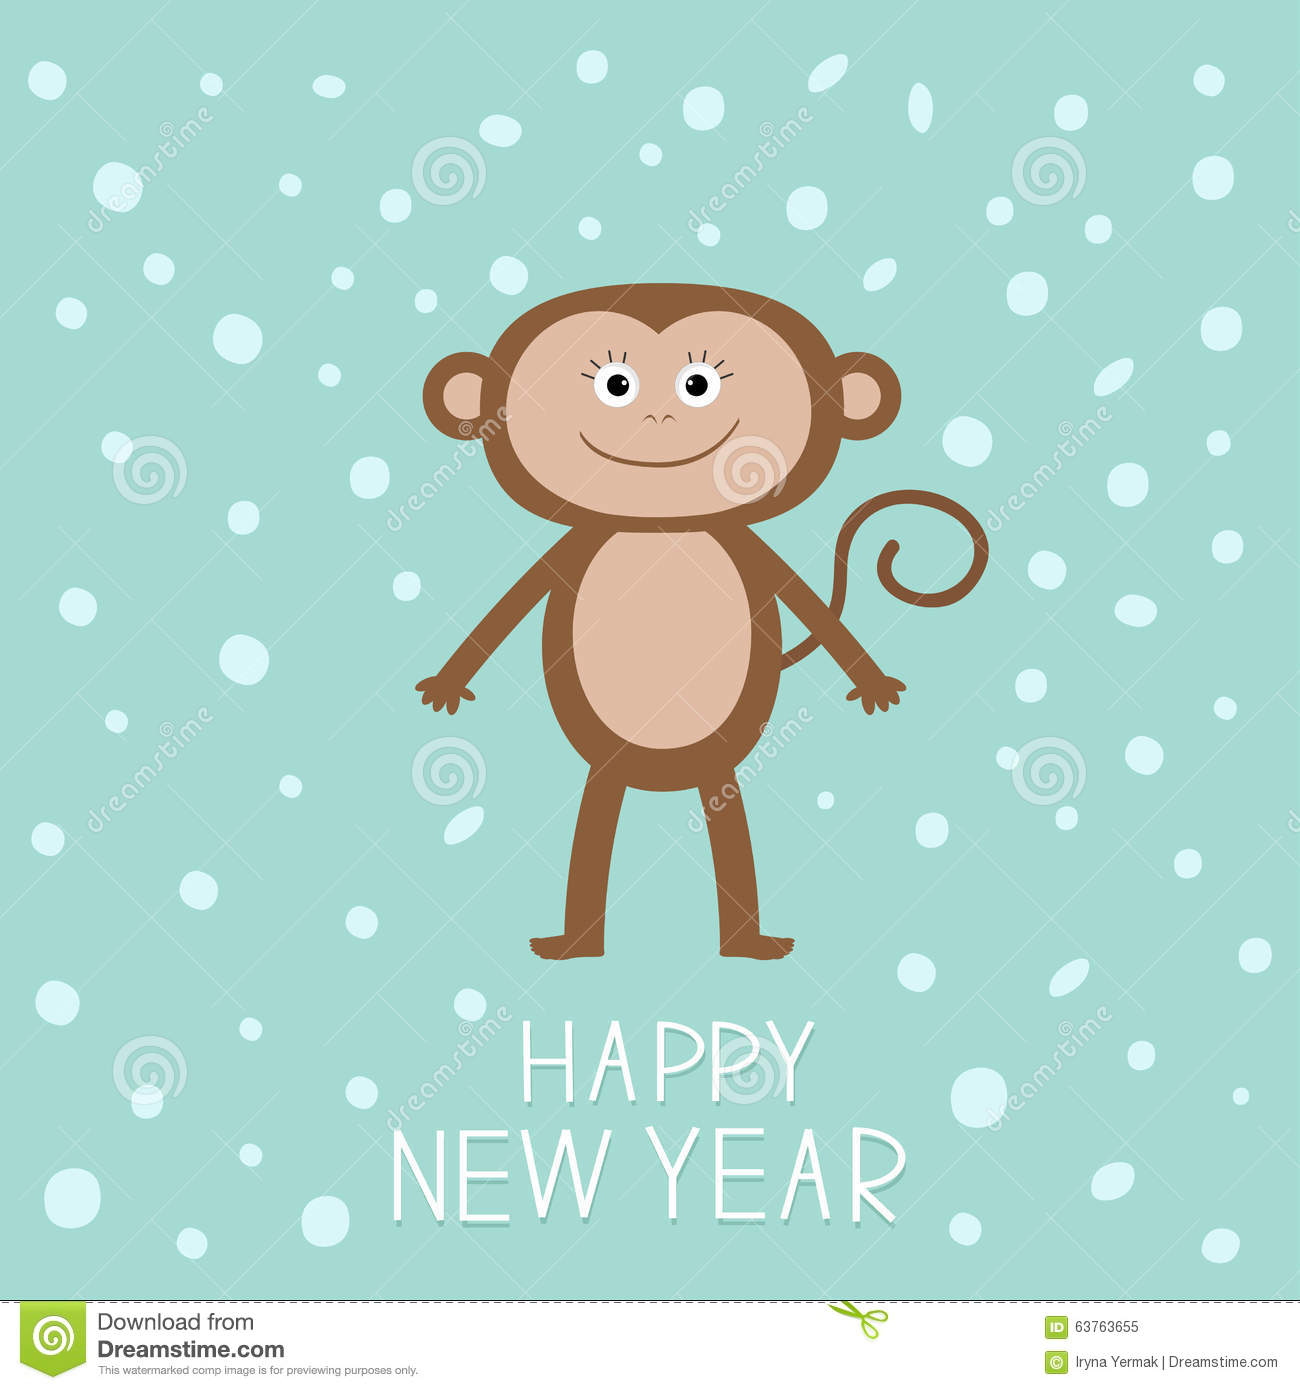 cute monkey on snow background happy new year 2016 baby illustration greeting card